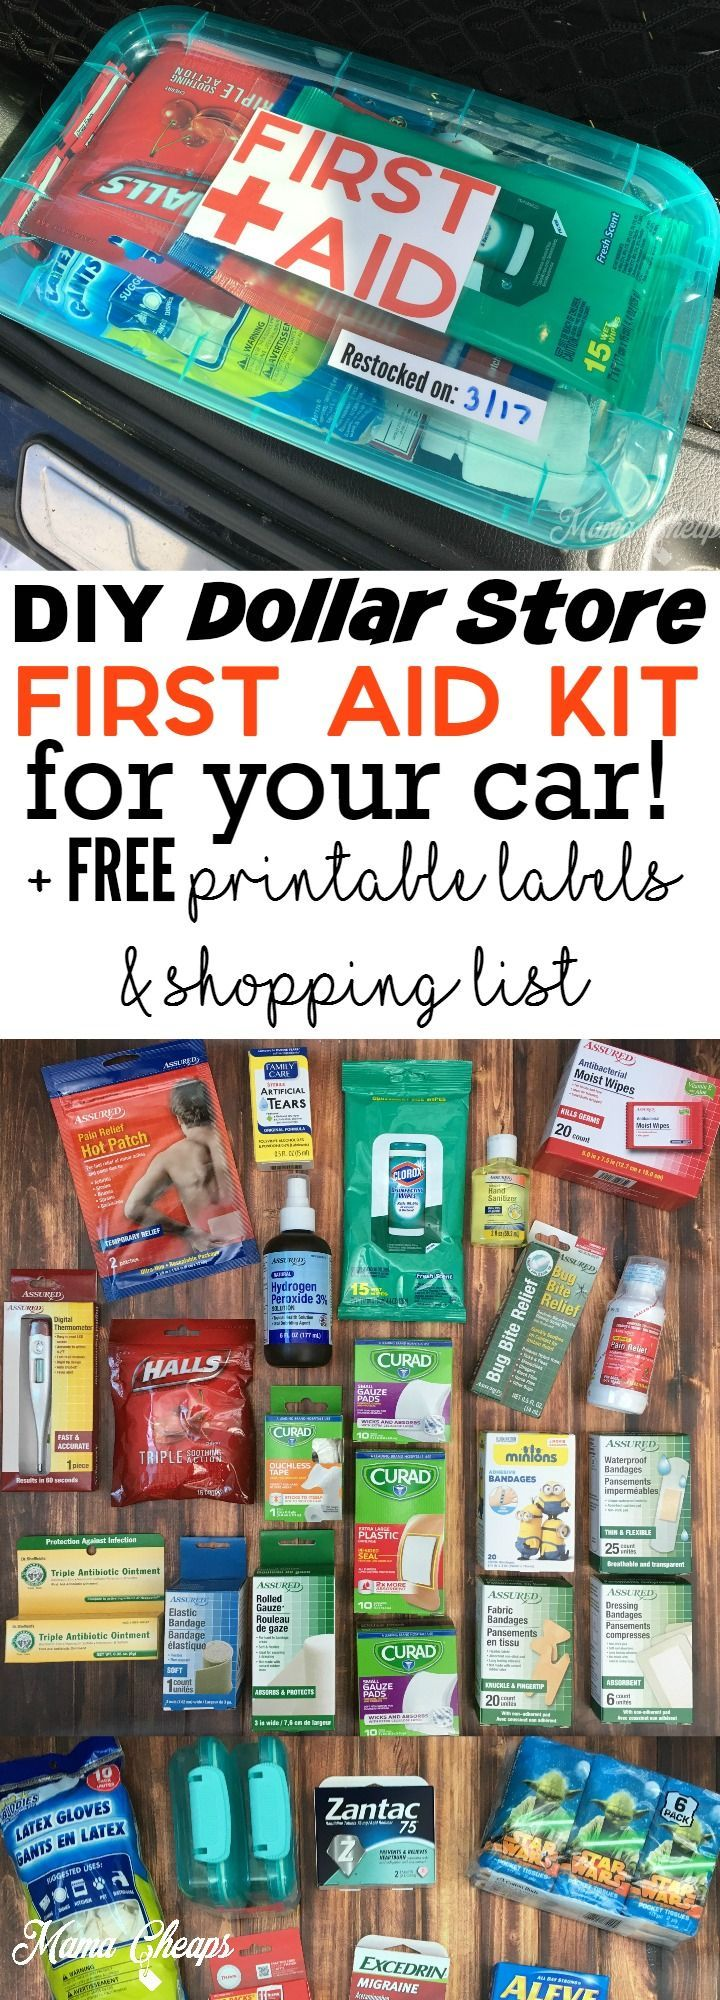 Diy dollar store first aid kit for your car free printable labels diy dollar store first aid kit for your car free printable labels and shopping list solutioingenieria Image collections